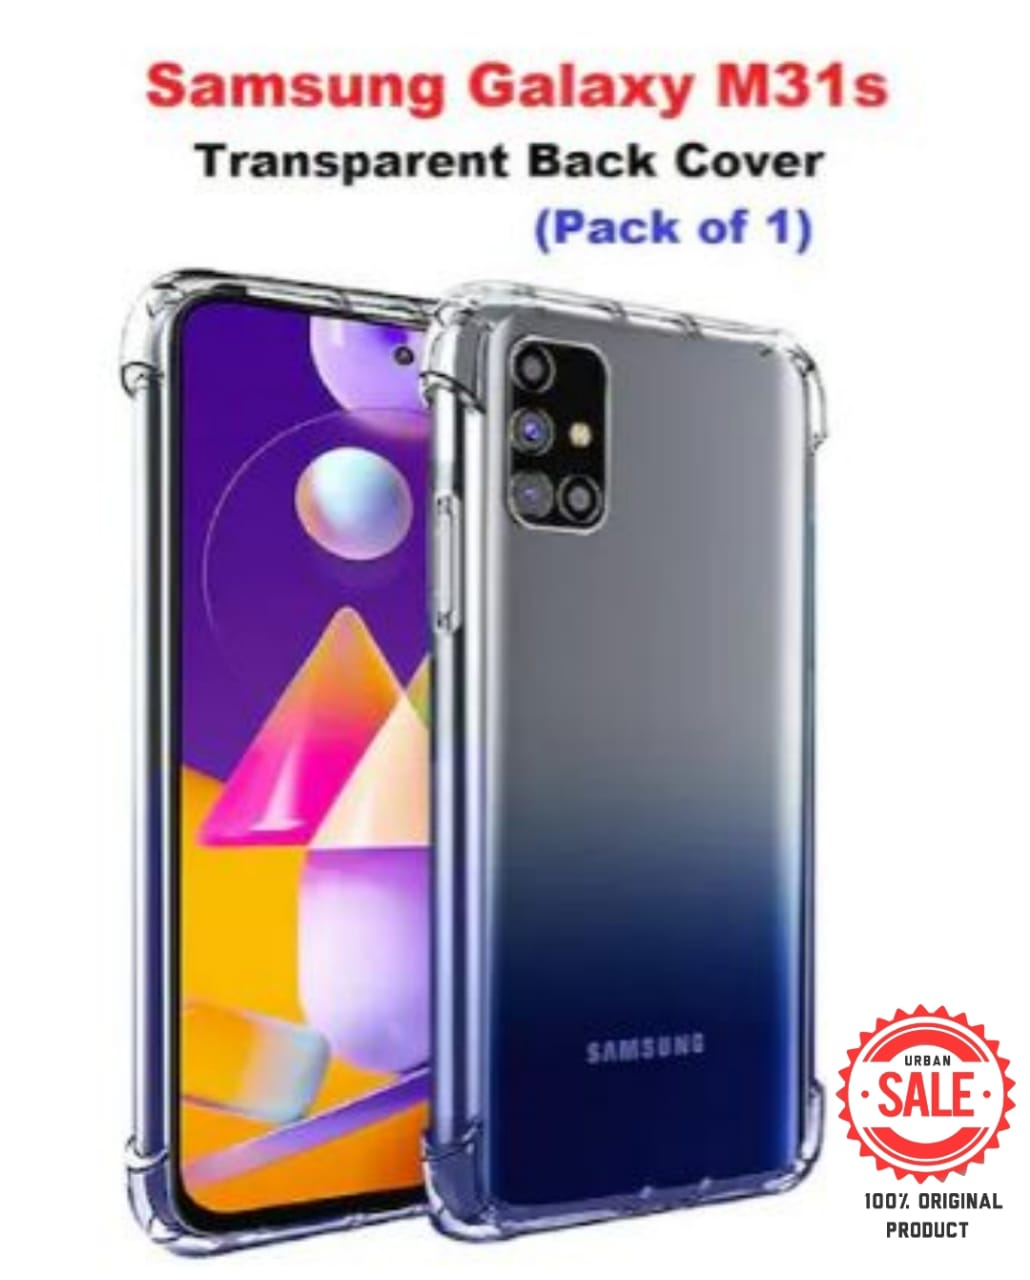 Samsung Galaxy M31s Back Cover Case   Shockproof Soft TPU Case   Cushioned Edges for Ultimate Protection (Transparent)